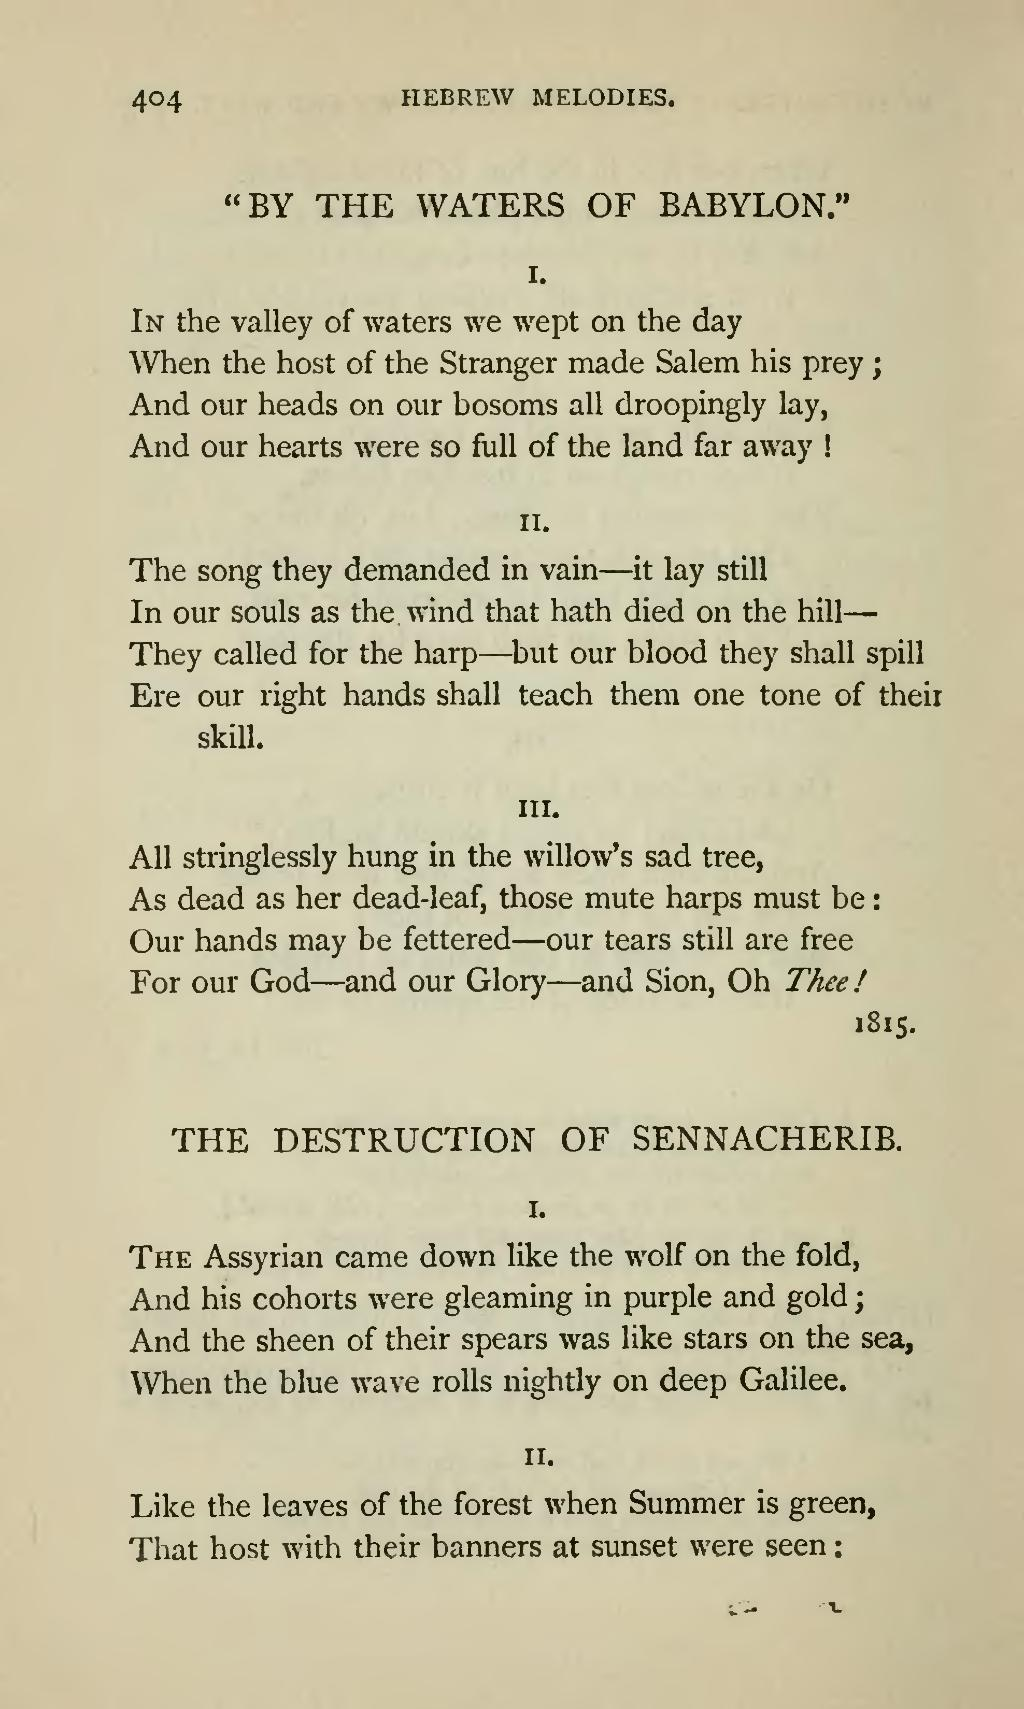 the assyrian came down like a wolf on the fold